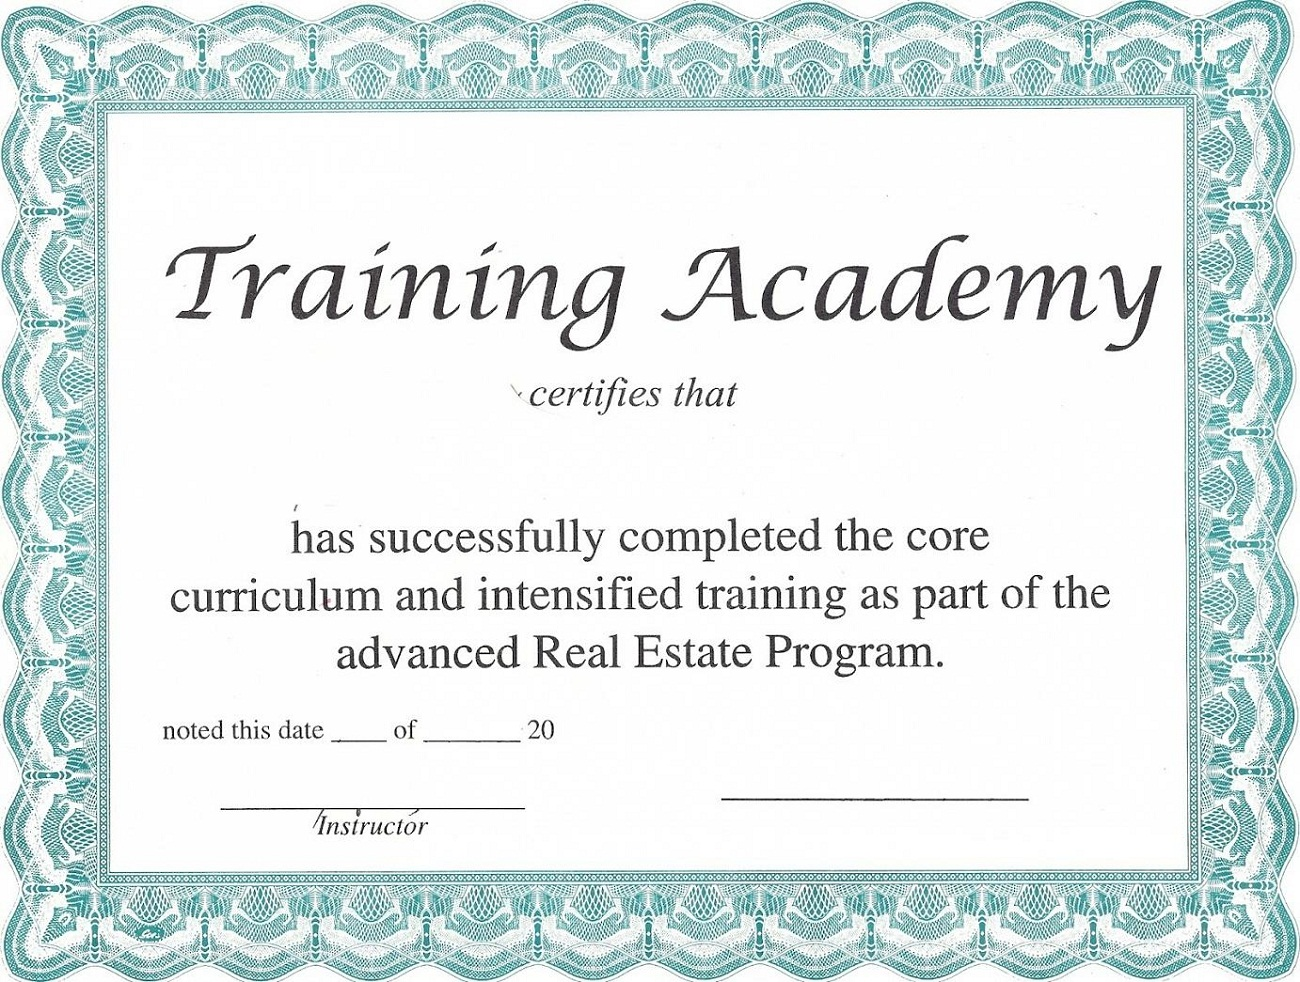 training certificate template free - blank certificate templates to print activity shelter